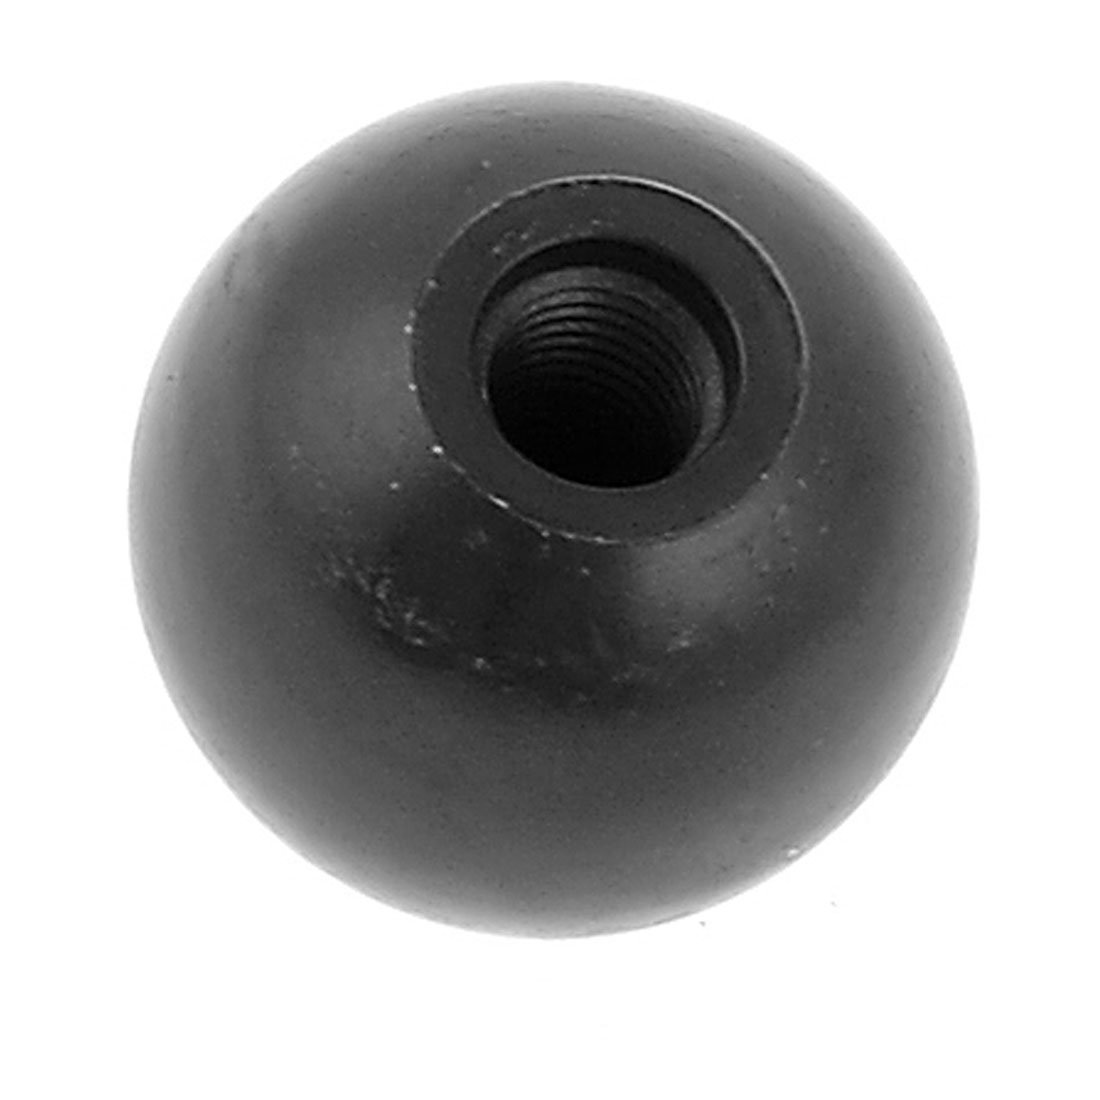 uxcell Plastic Ball Shape Joystick Machine Control Grip Black Knob 35mmx10mm